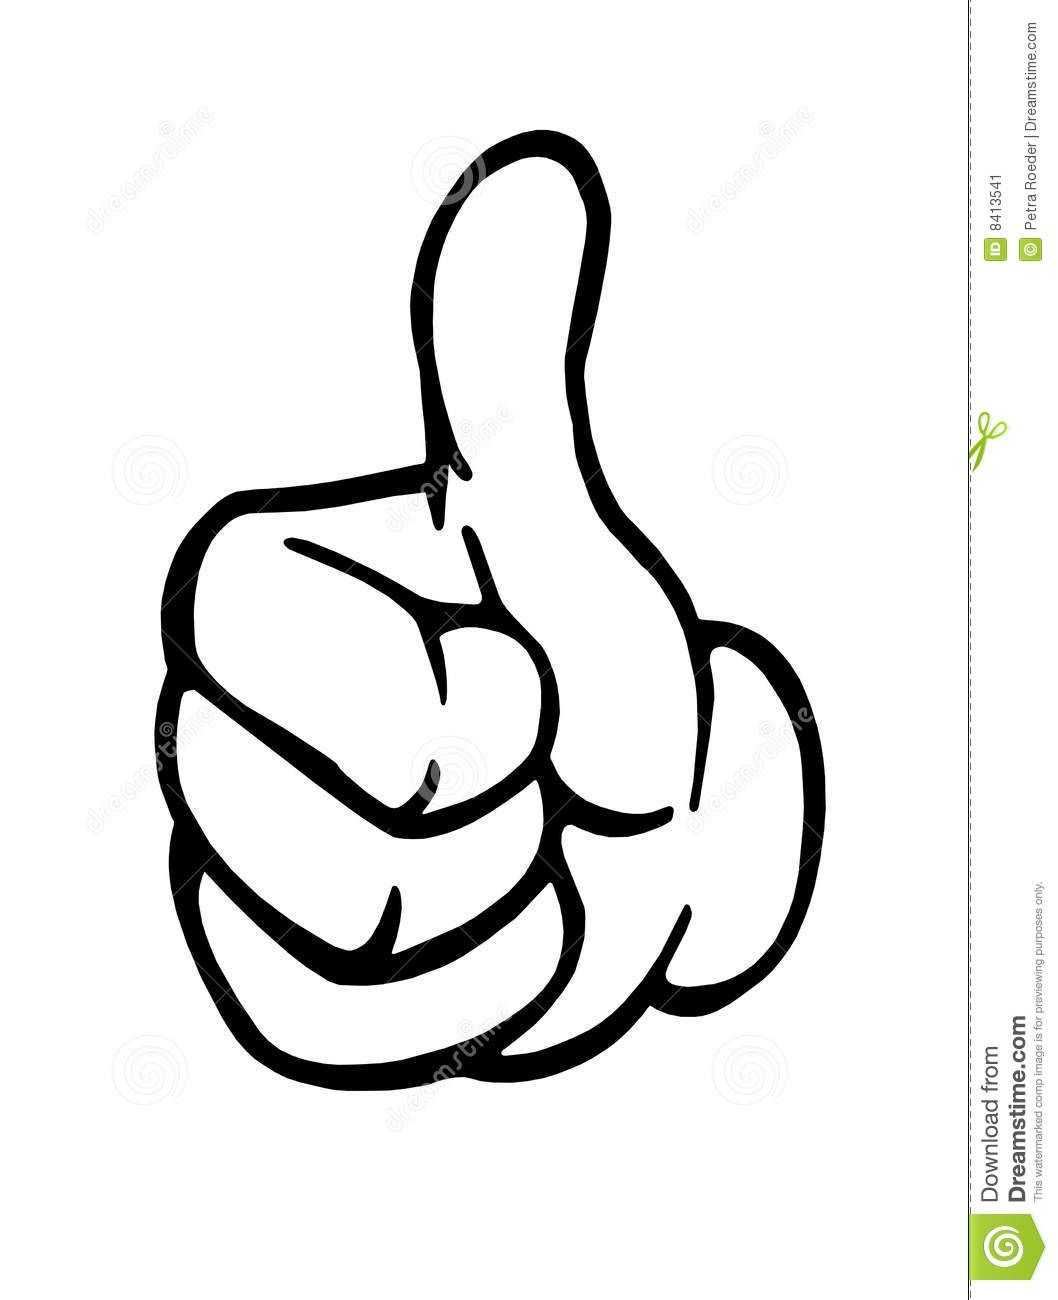 Thumbs Up Sign Stock Image.